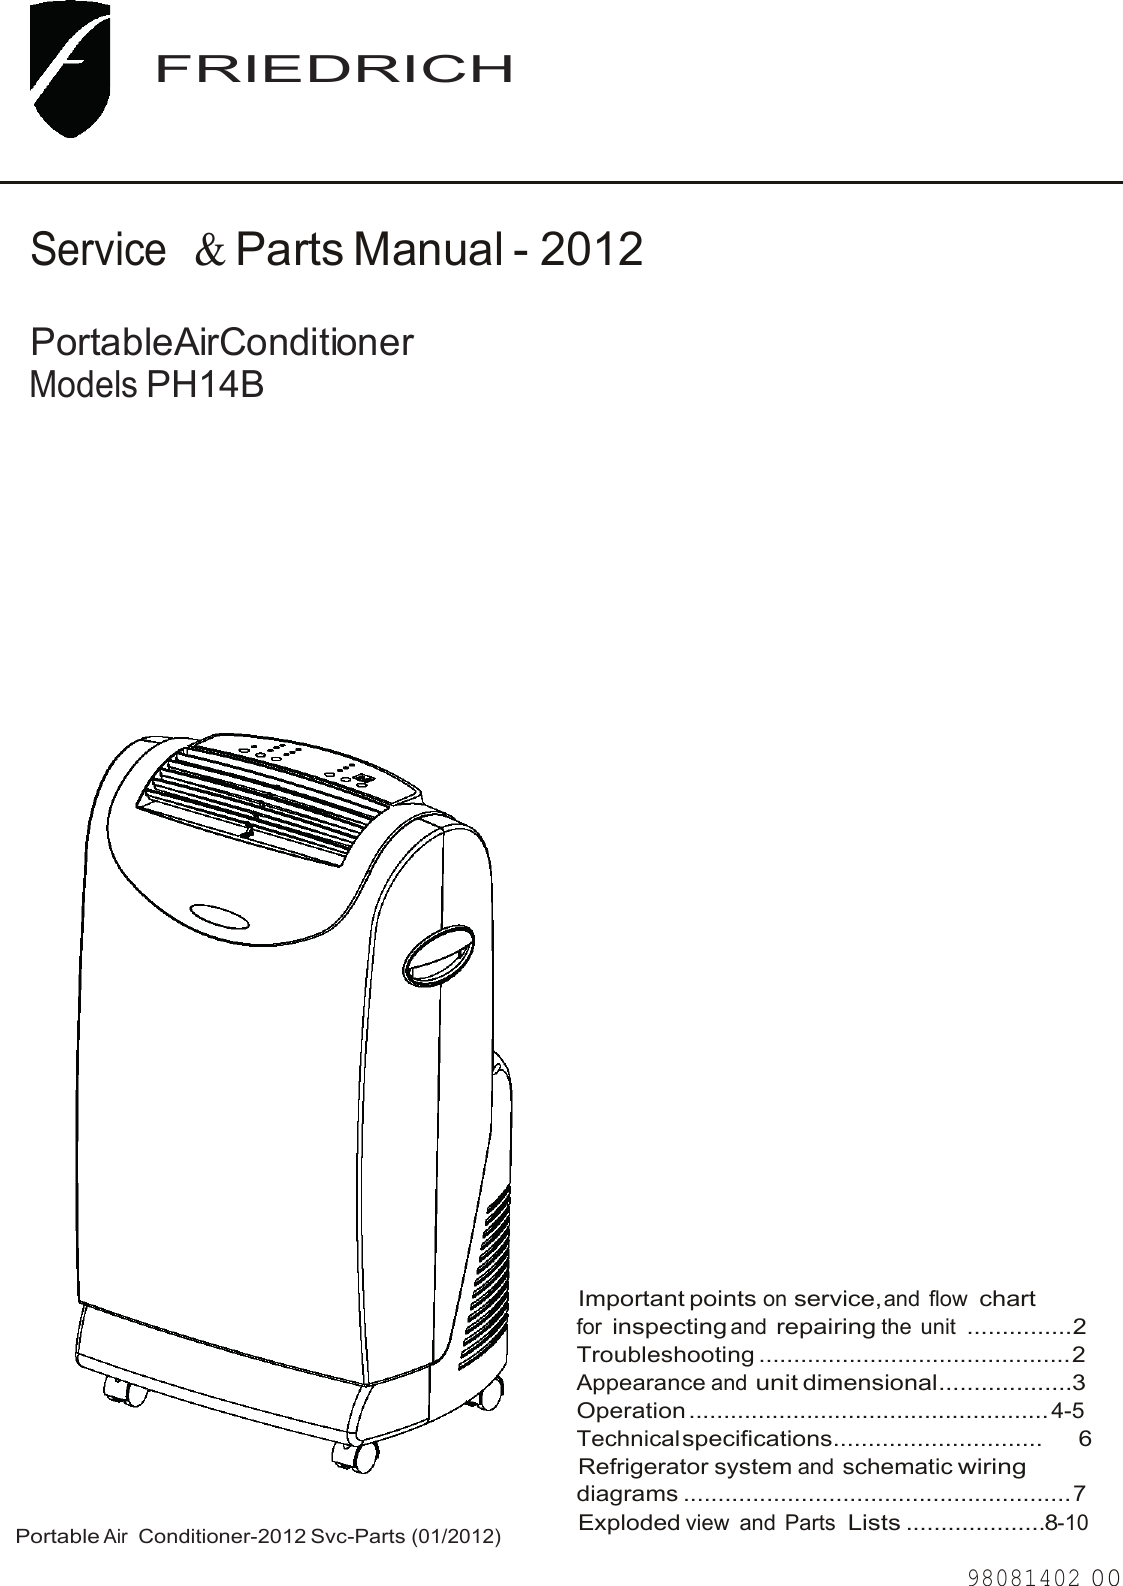 Friedrich Air Conditioner Ph14b Users Manual Portable 06 19 12 Small Appliance Wiring Diagram